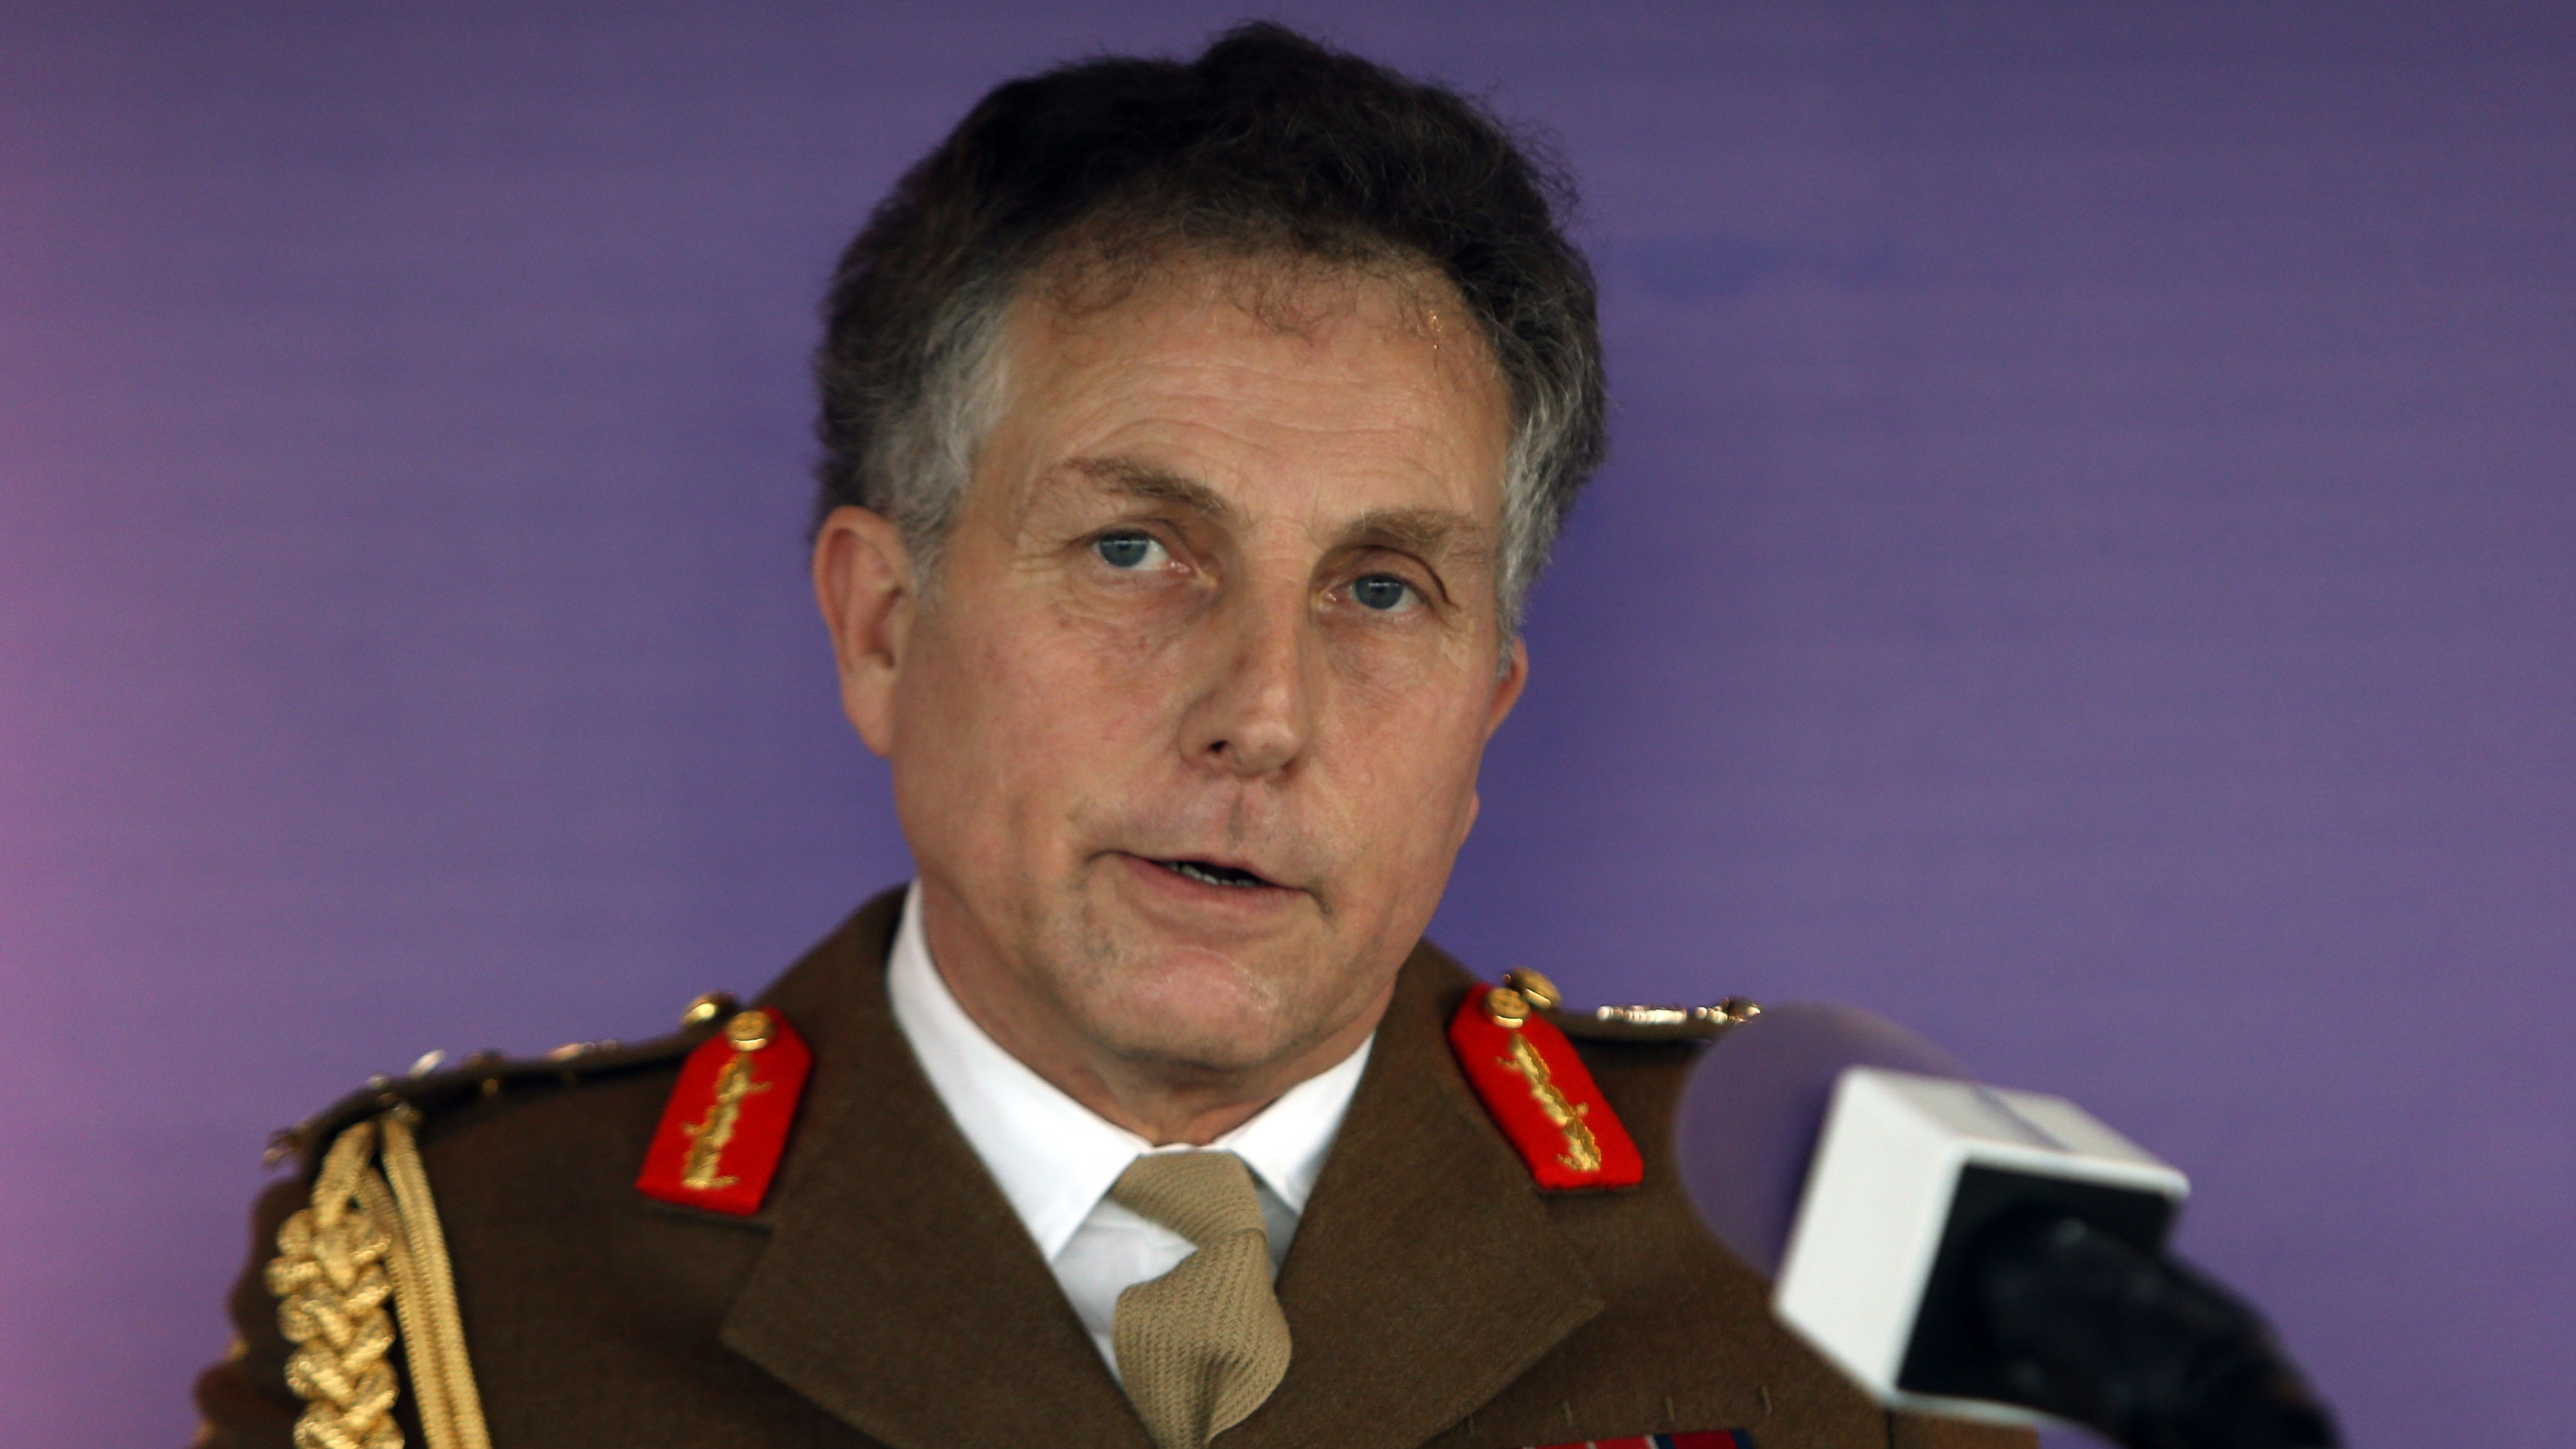 British Army chief warns United Kingdom must keep up with its enemies